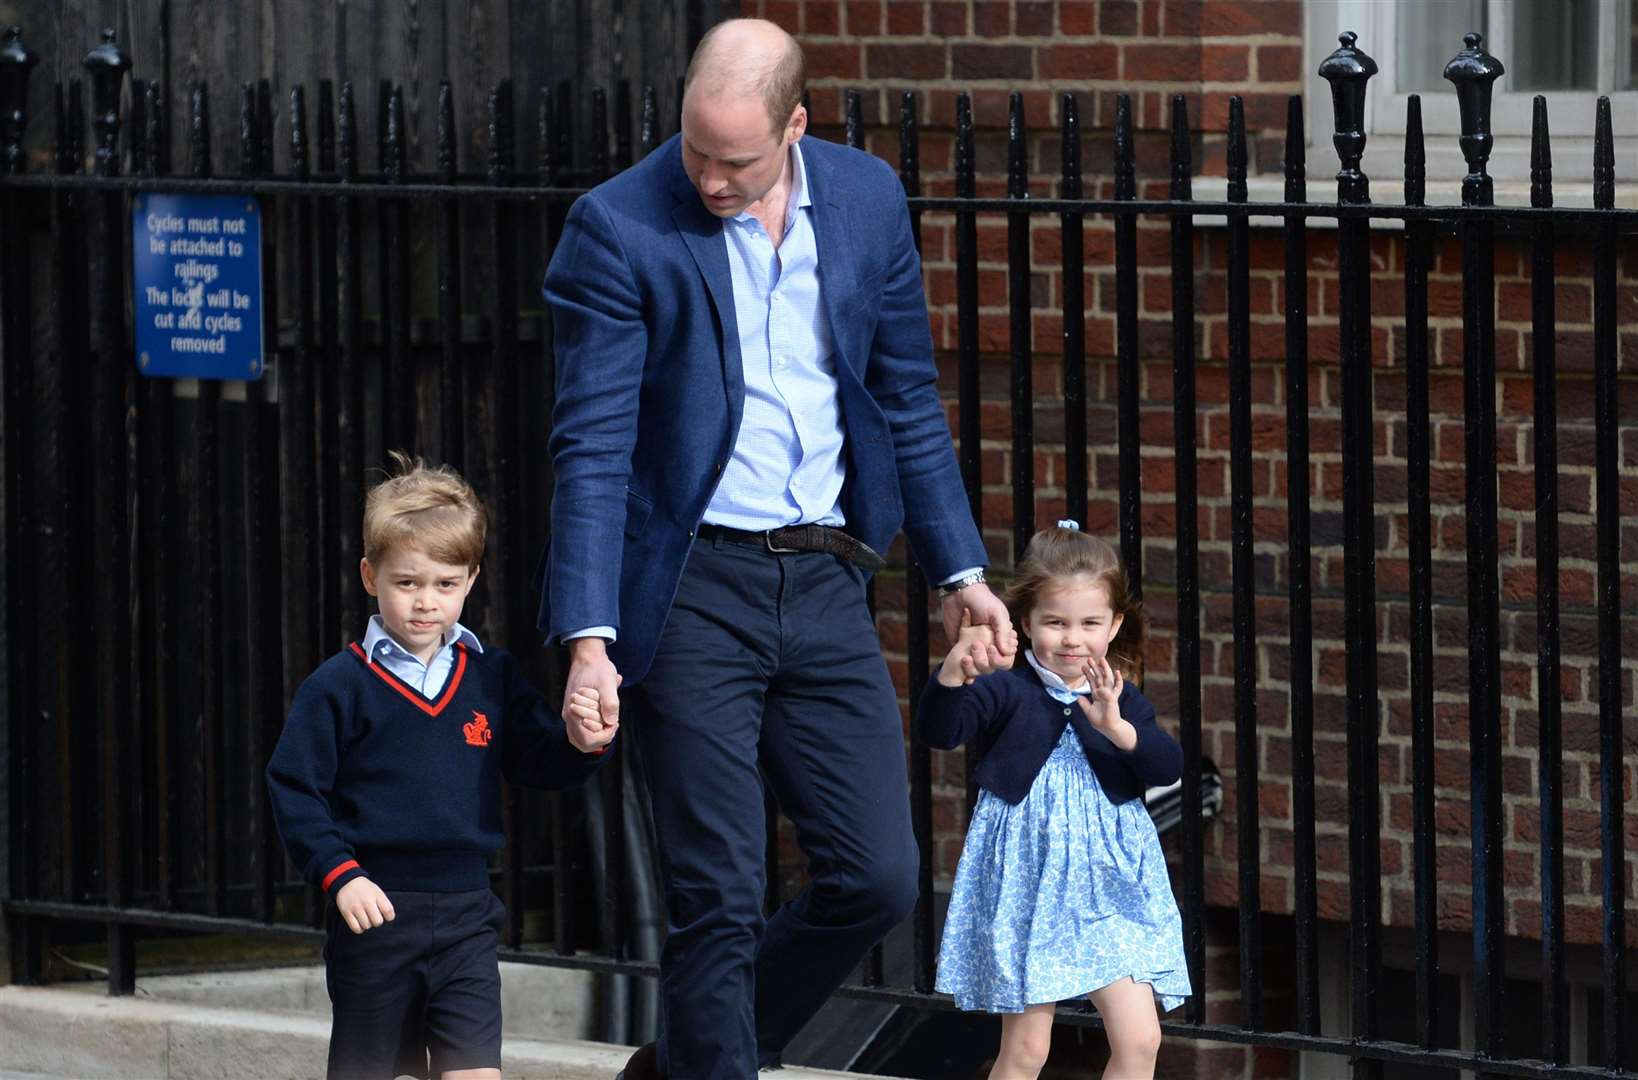 Both Prince George and Princess Charlotte will need to adapt to the birth of their baby brother